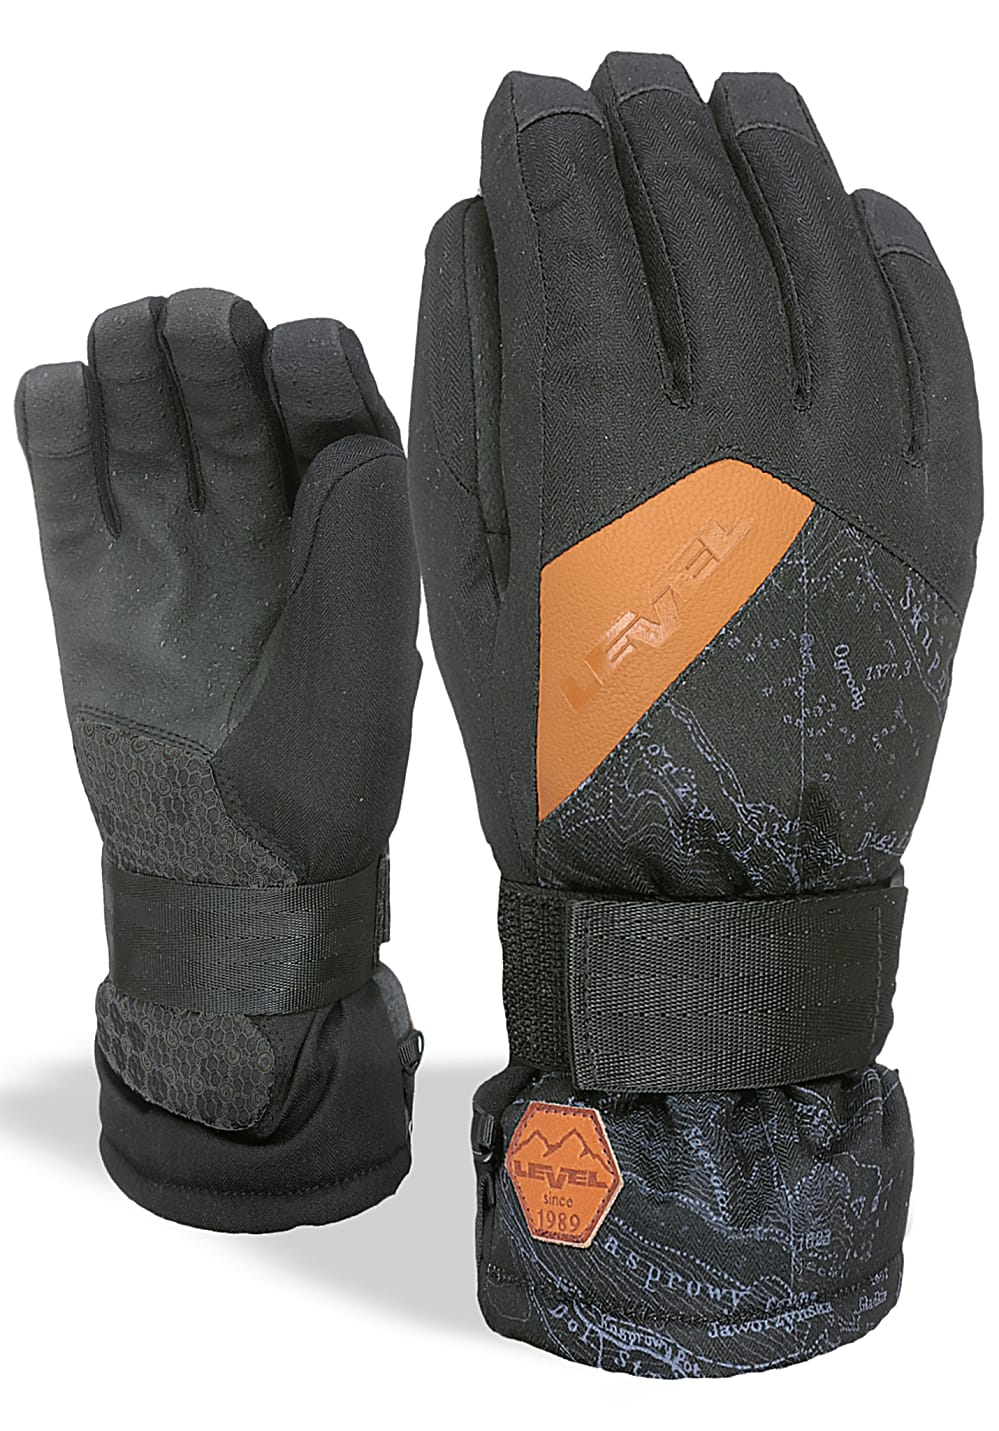 Boysaccessoires - Level Rocky Snowboard Handschuhe Schwarz - Onlineshop Planet Sports